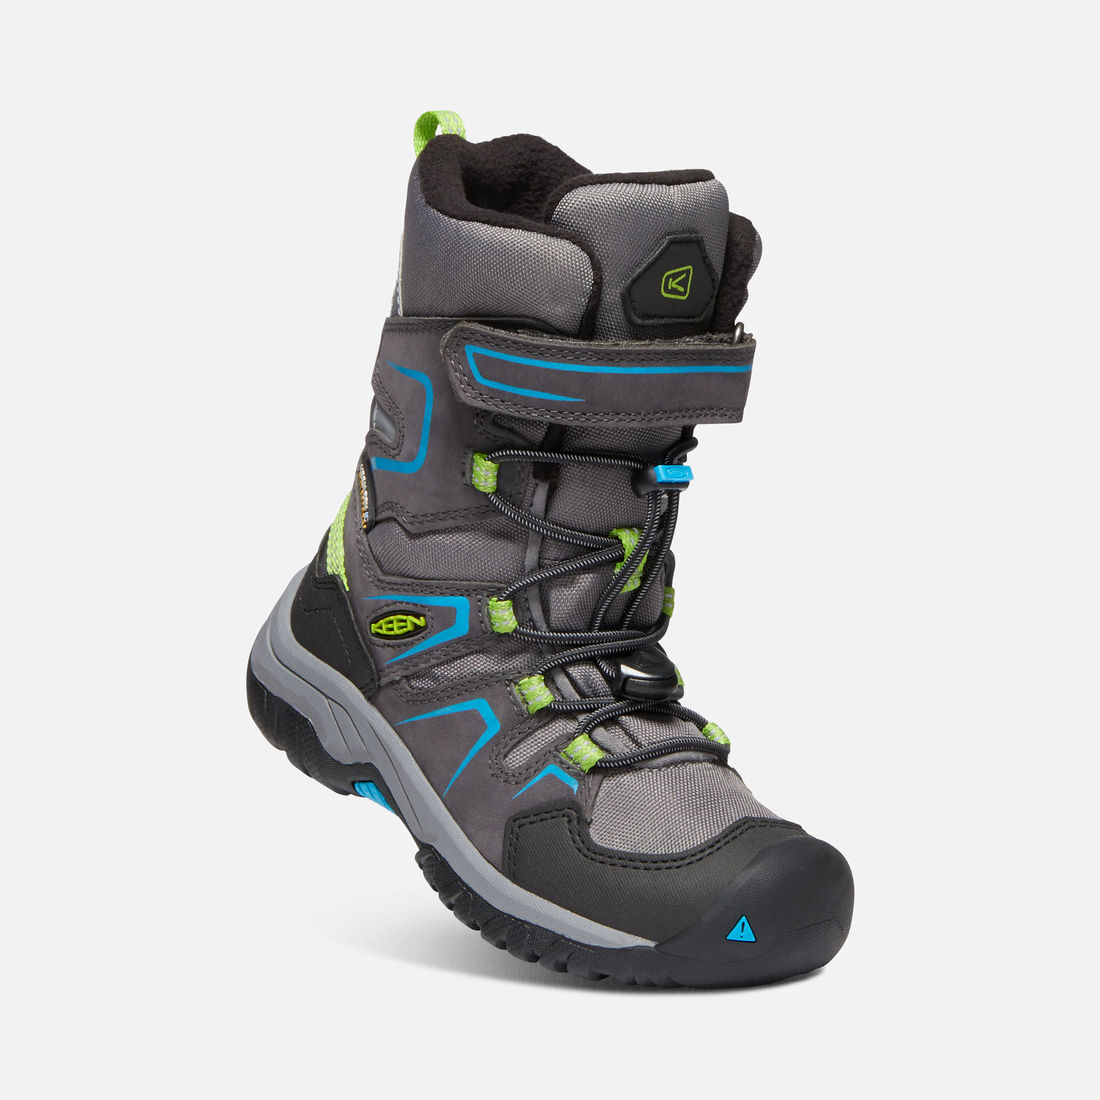 KEEN LEVO WATERPROOF WINTER BOOT šedé vel.29